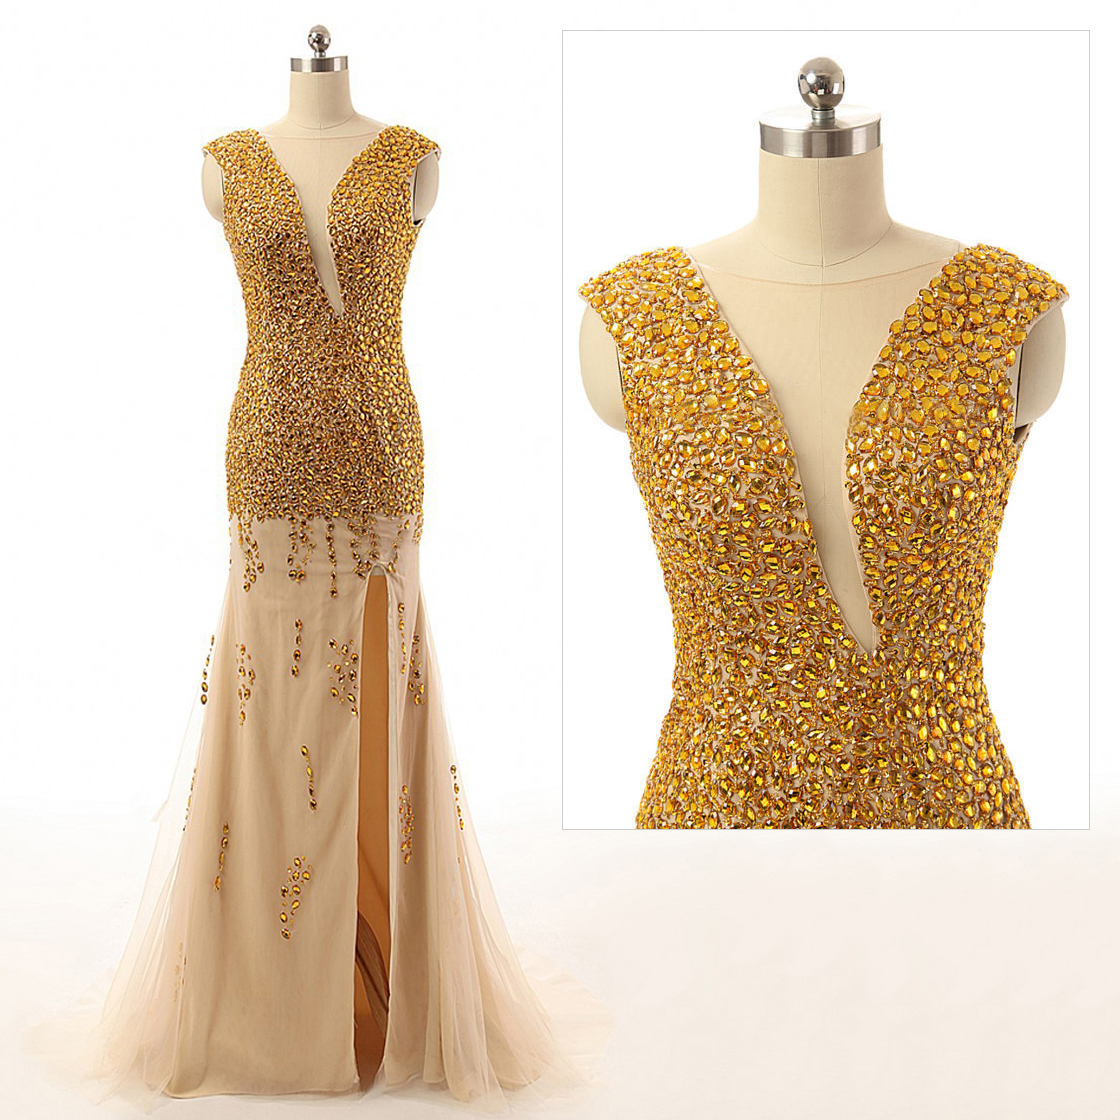 Luxurious Gold Sequined Prom Dress with a Side Slit, Mermaid Open Back Prom Dresses, Sexy Cap Sleeve Tulle Evening Dress, #020102103